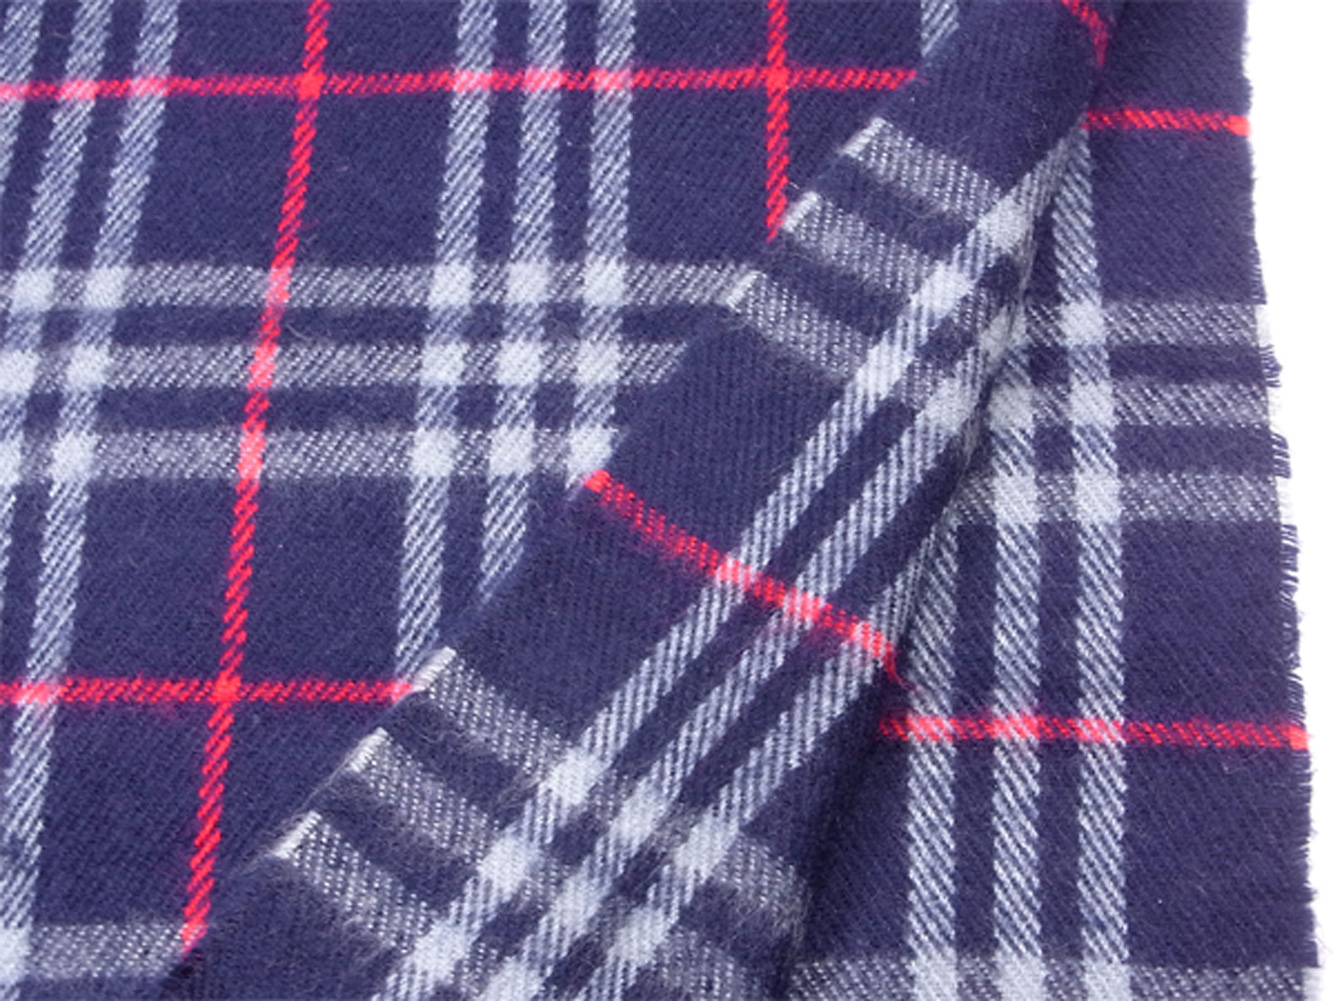 6de20e3018df7 ... Lady's men check navy-blue red wool hair popularity sale T9984 with the Burberry  BURBERRY ...